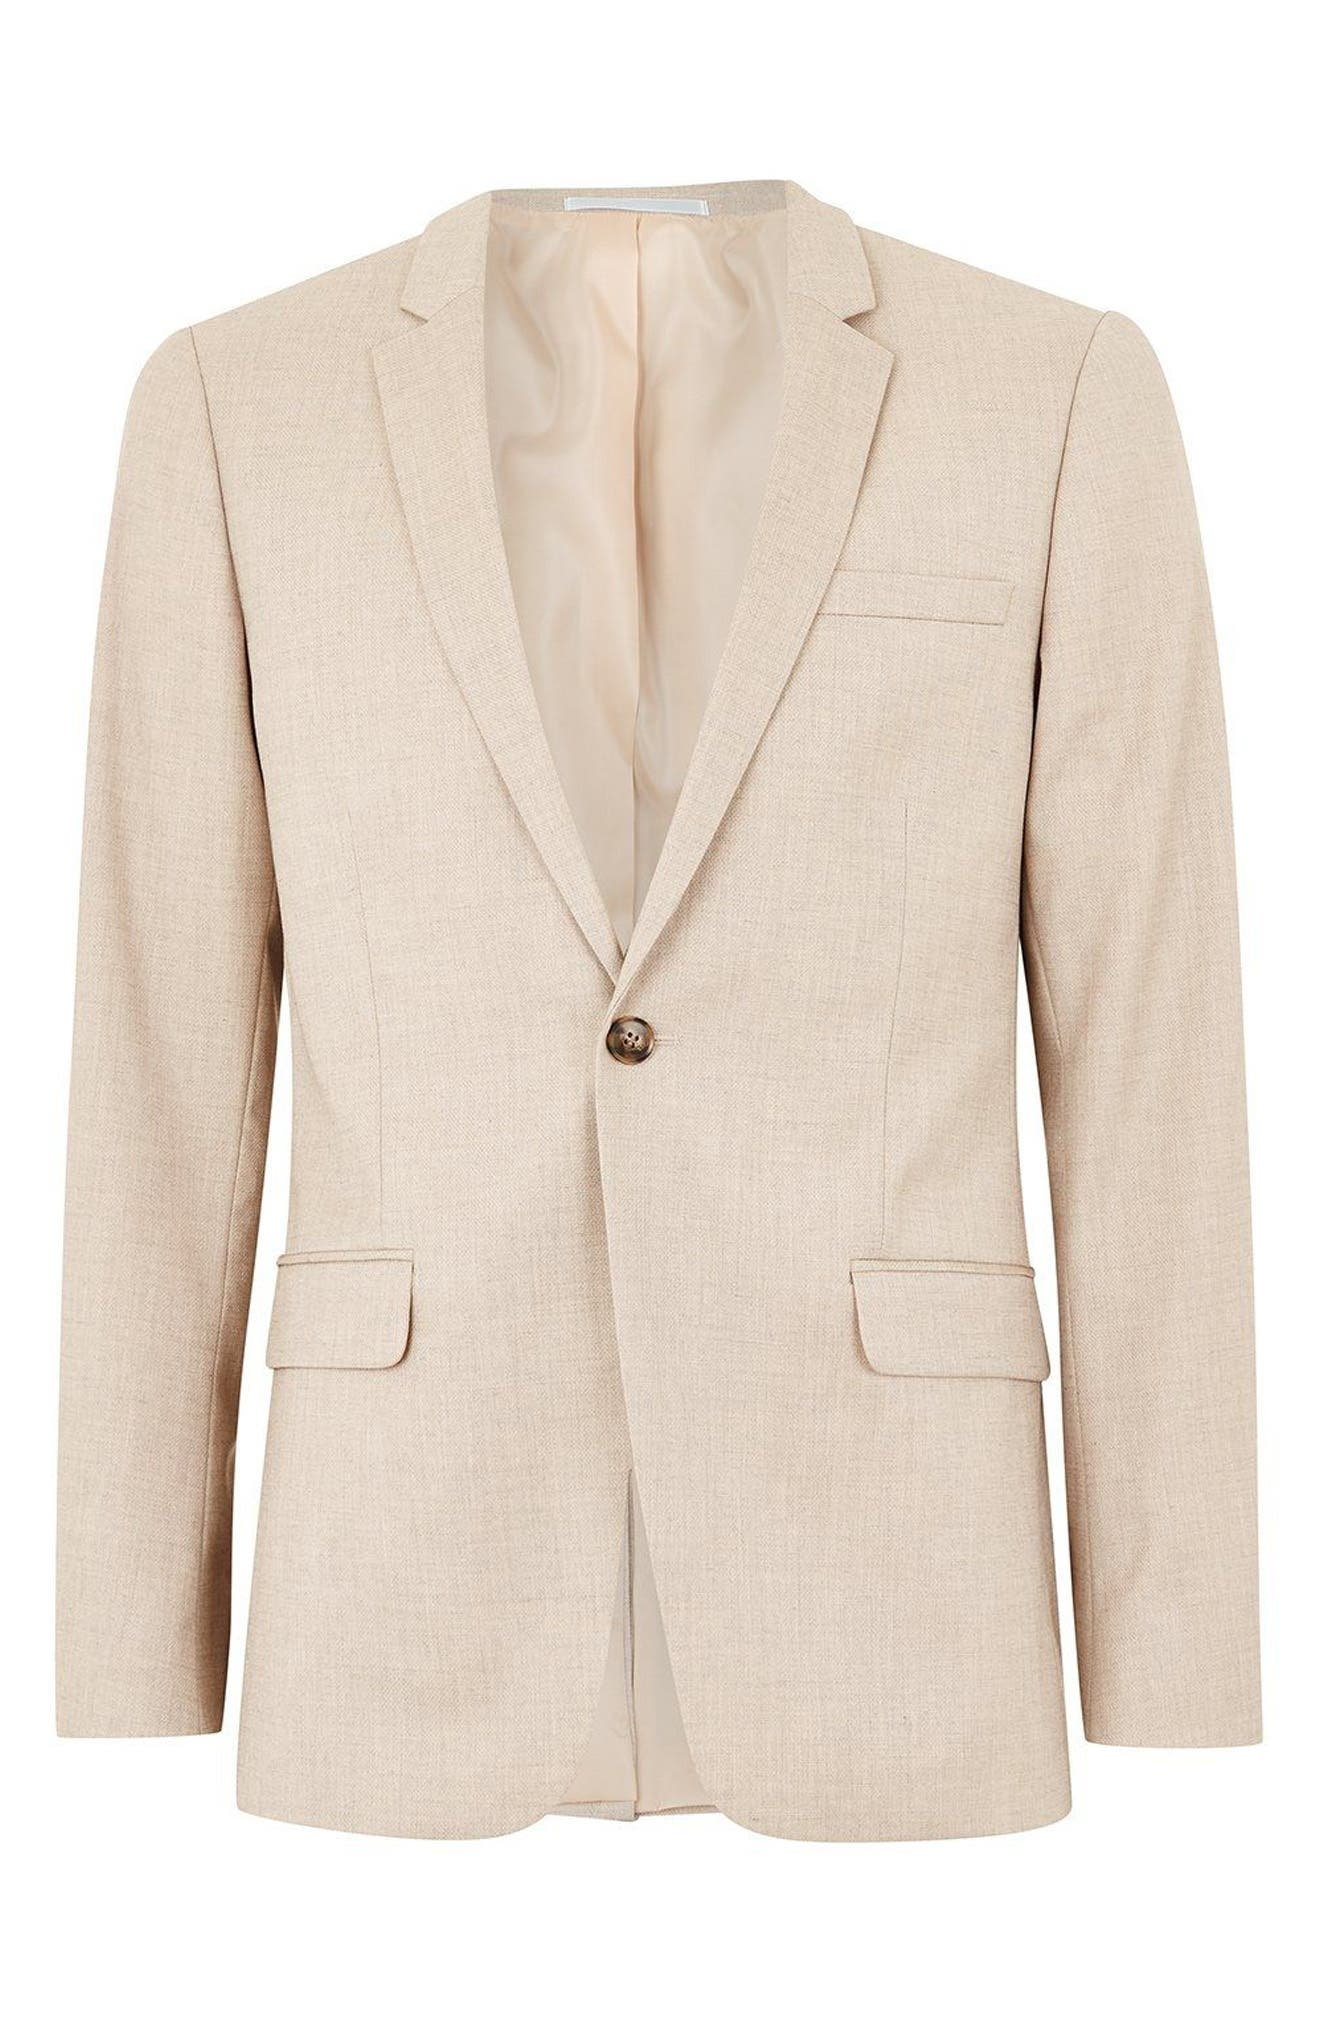 Skinny Fit Check Suit Jacket,                             Alternate thumbnail 4, color,                             Stone